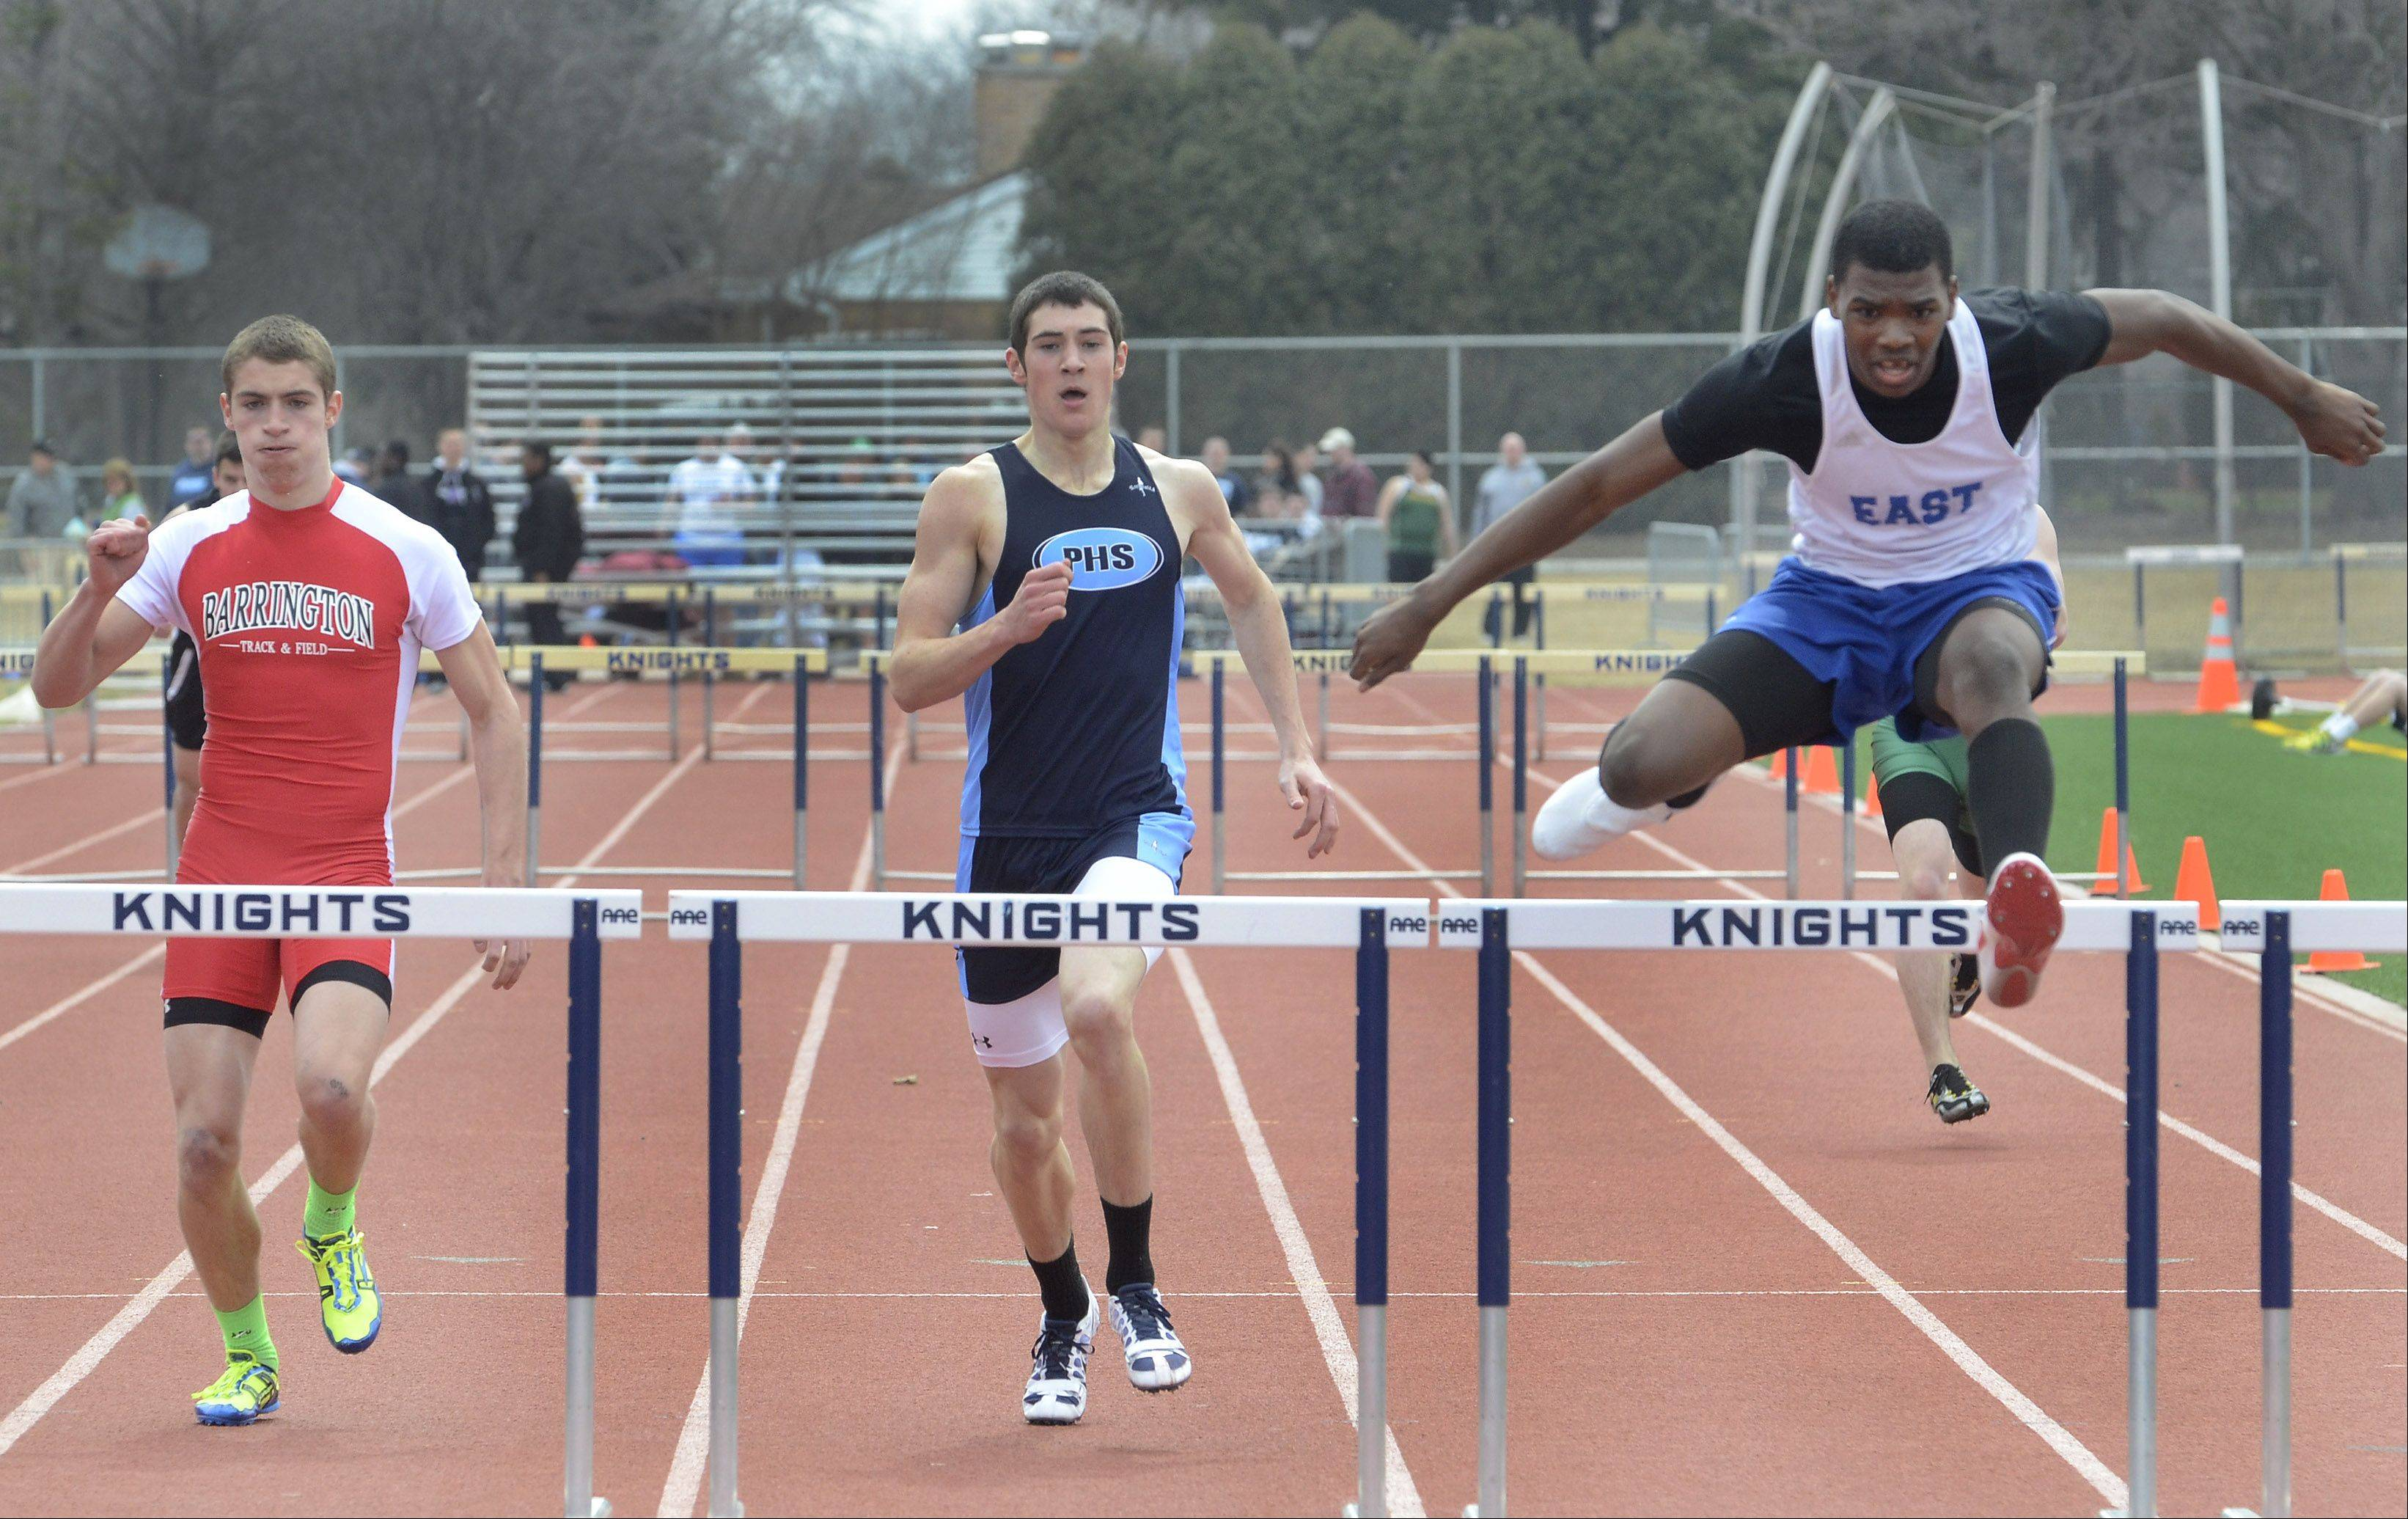 Jalen Lewis of Maine East, right, wins the fourth heat of the 300 intermediate hurdles, with Prospect's Dave Kendziera in second after stumbling, and Barrington's Jace Goetsch finishing third in the Prospect Relays on Saturday.